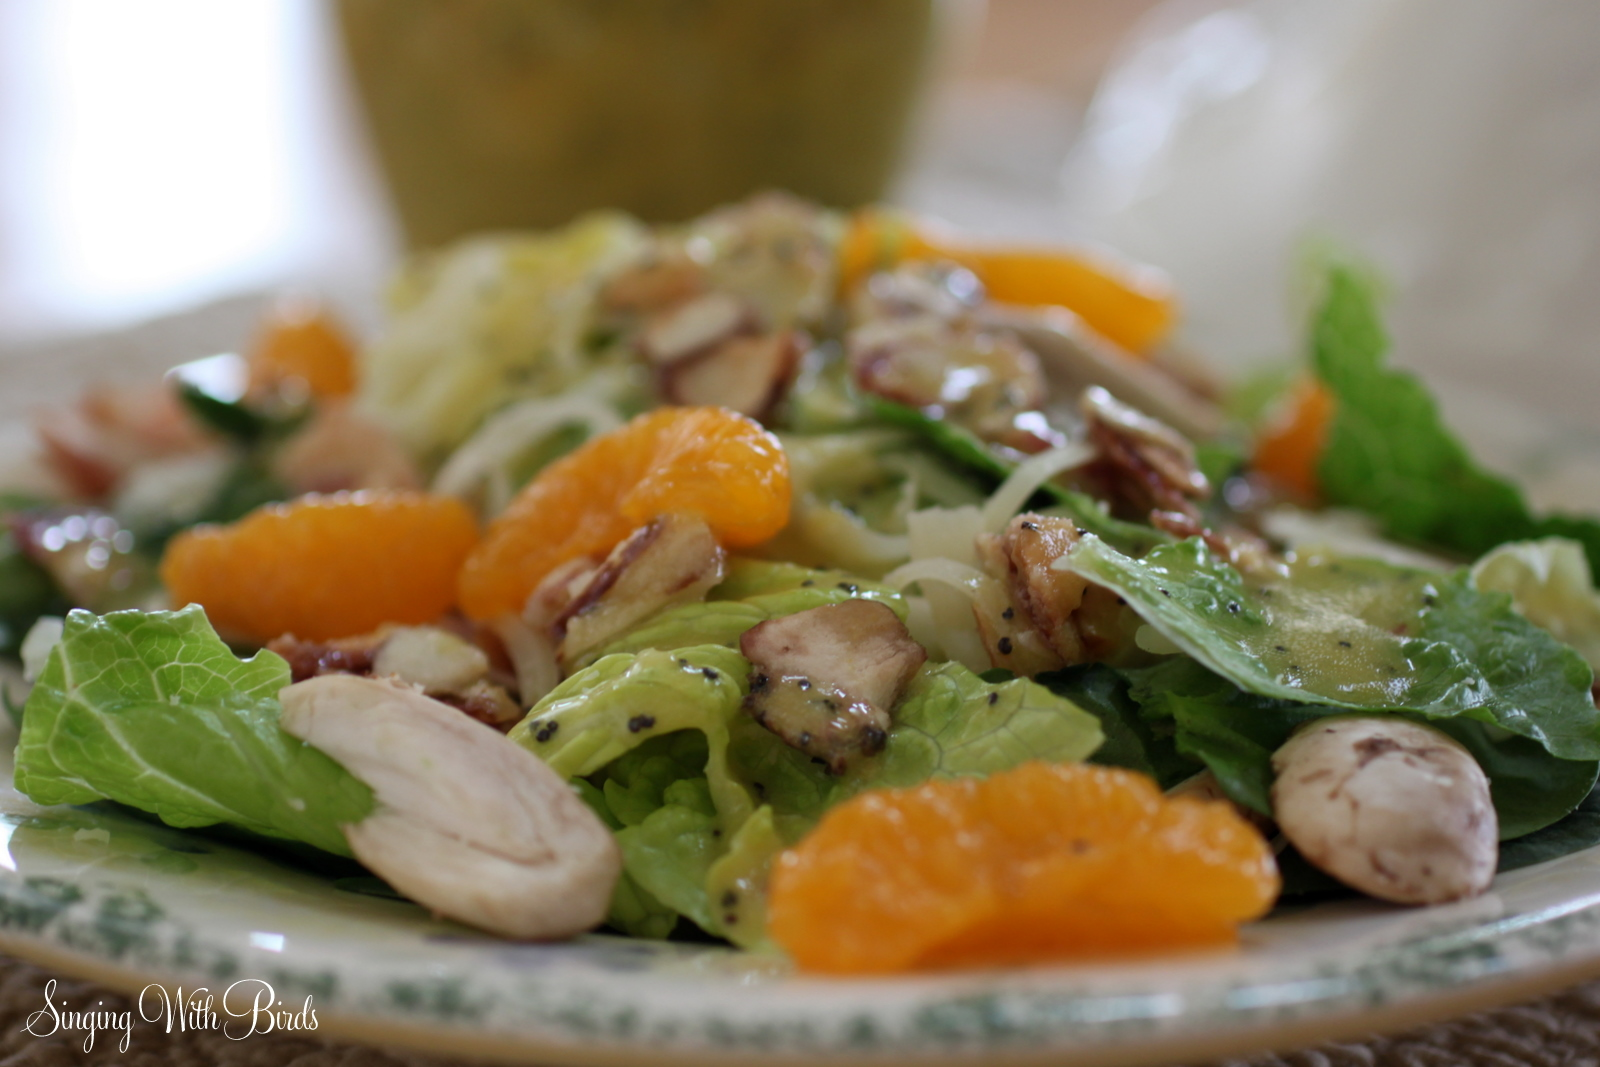 Romaine And Mandarin Orange Salad With Poppy Seed Dressing Recipe ...